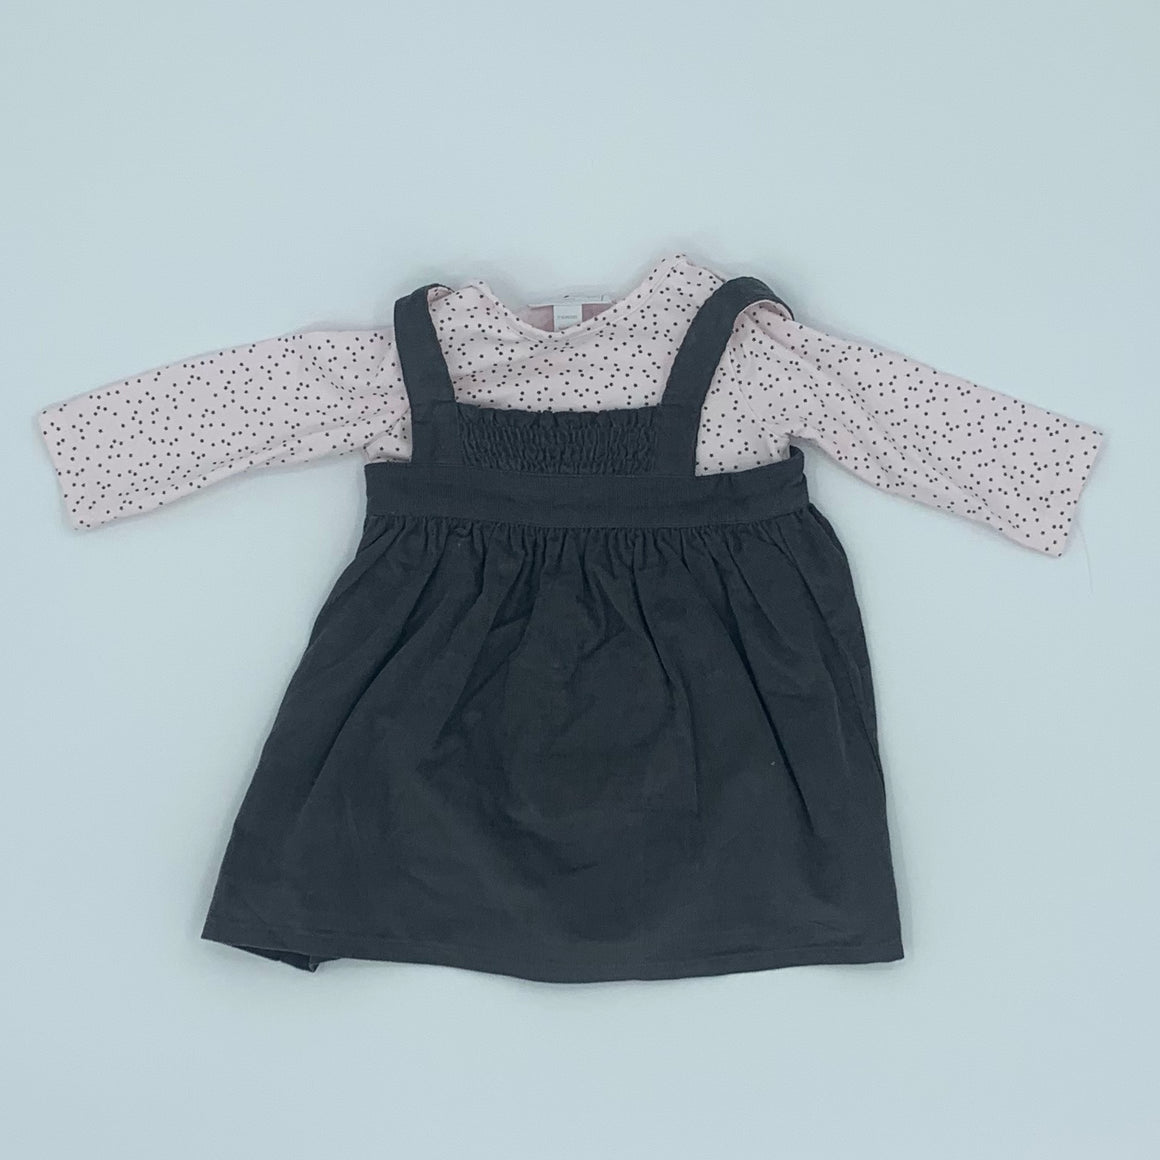 Hardly Worn The White Company cord dress set size 3-6 months